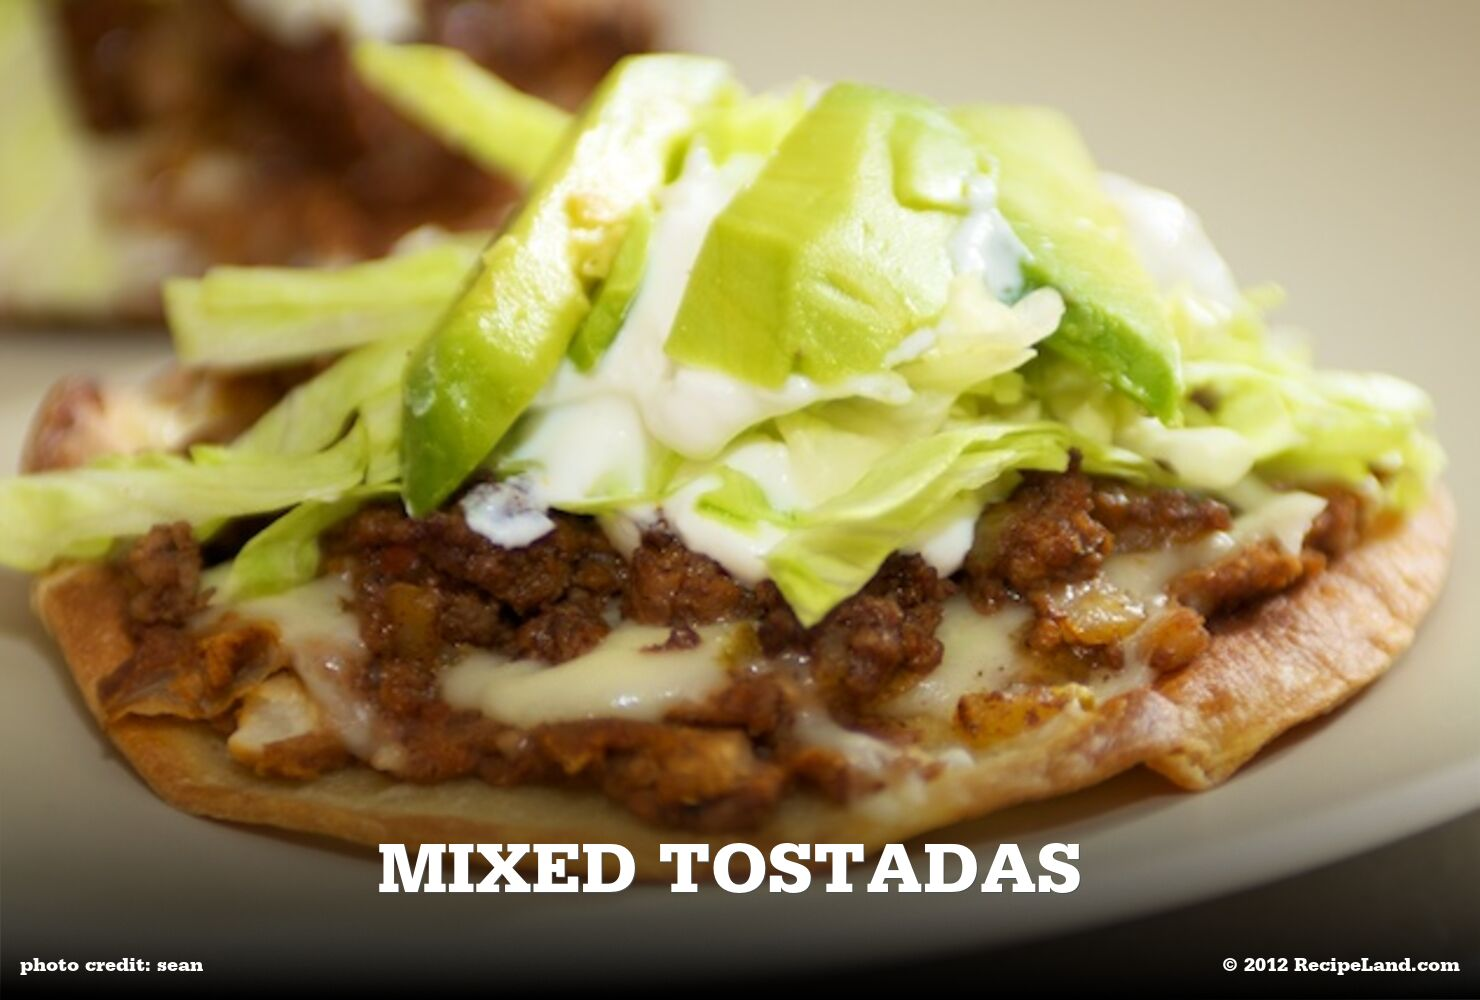 Mixed Tostadas